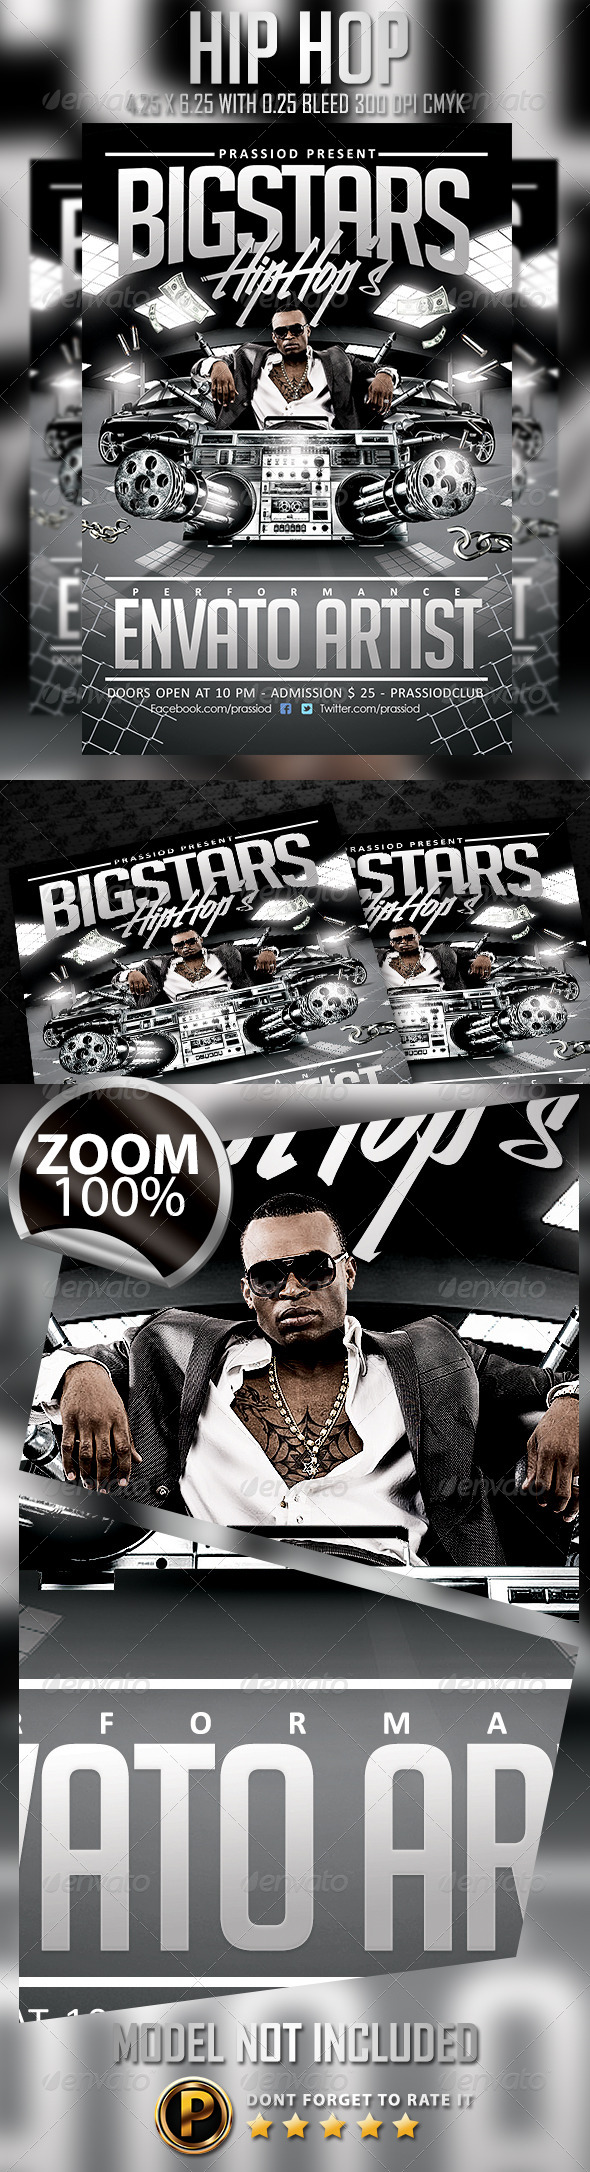 Hip Hop Flyer Template - Clubs & Parties Events